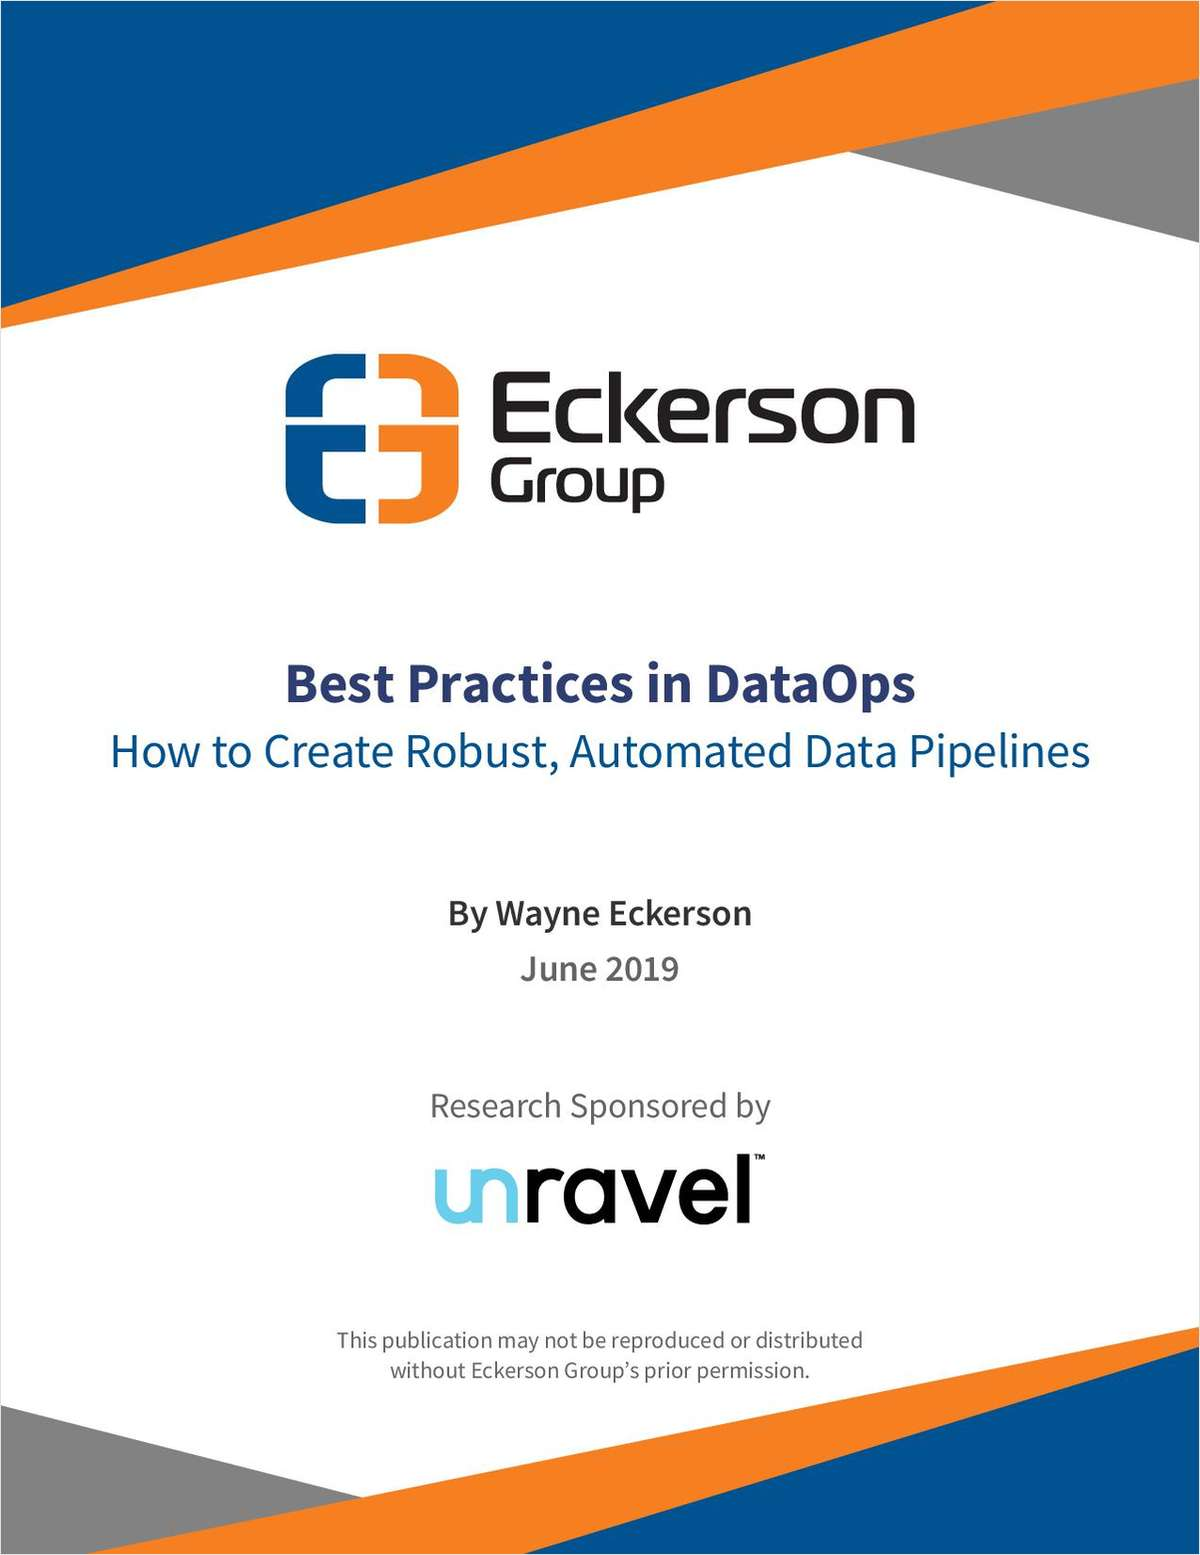 Best Practices in DataOps - How to Create Robust, Automated Data Pipelines